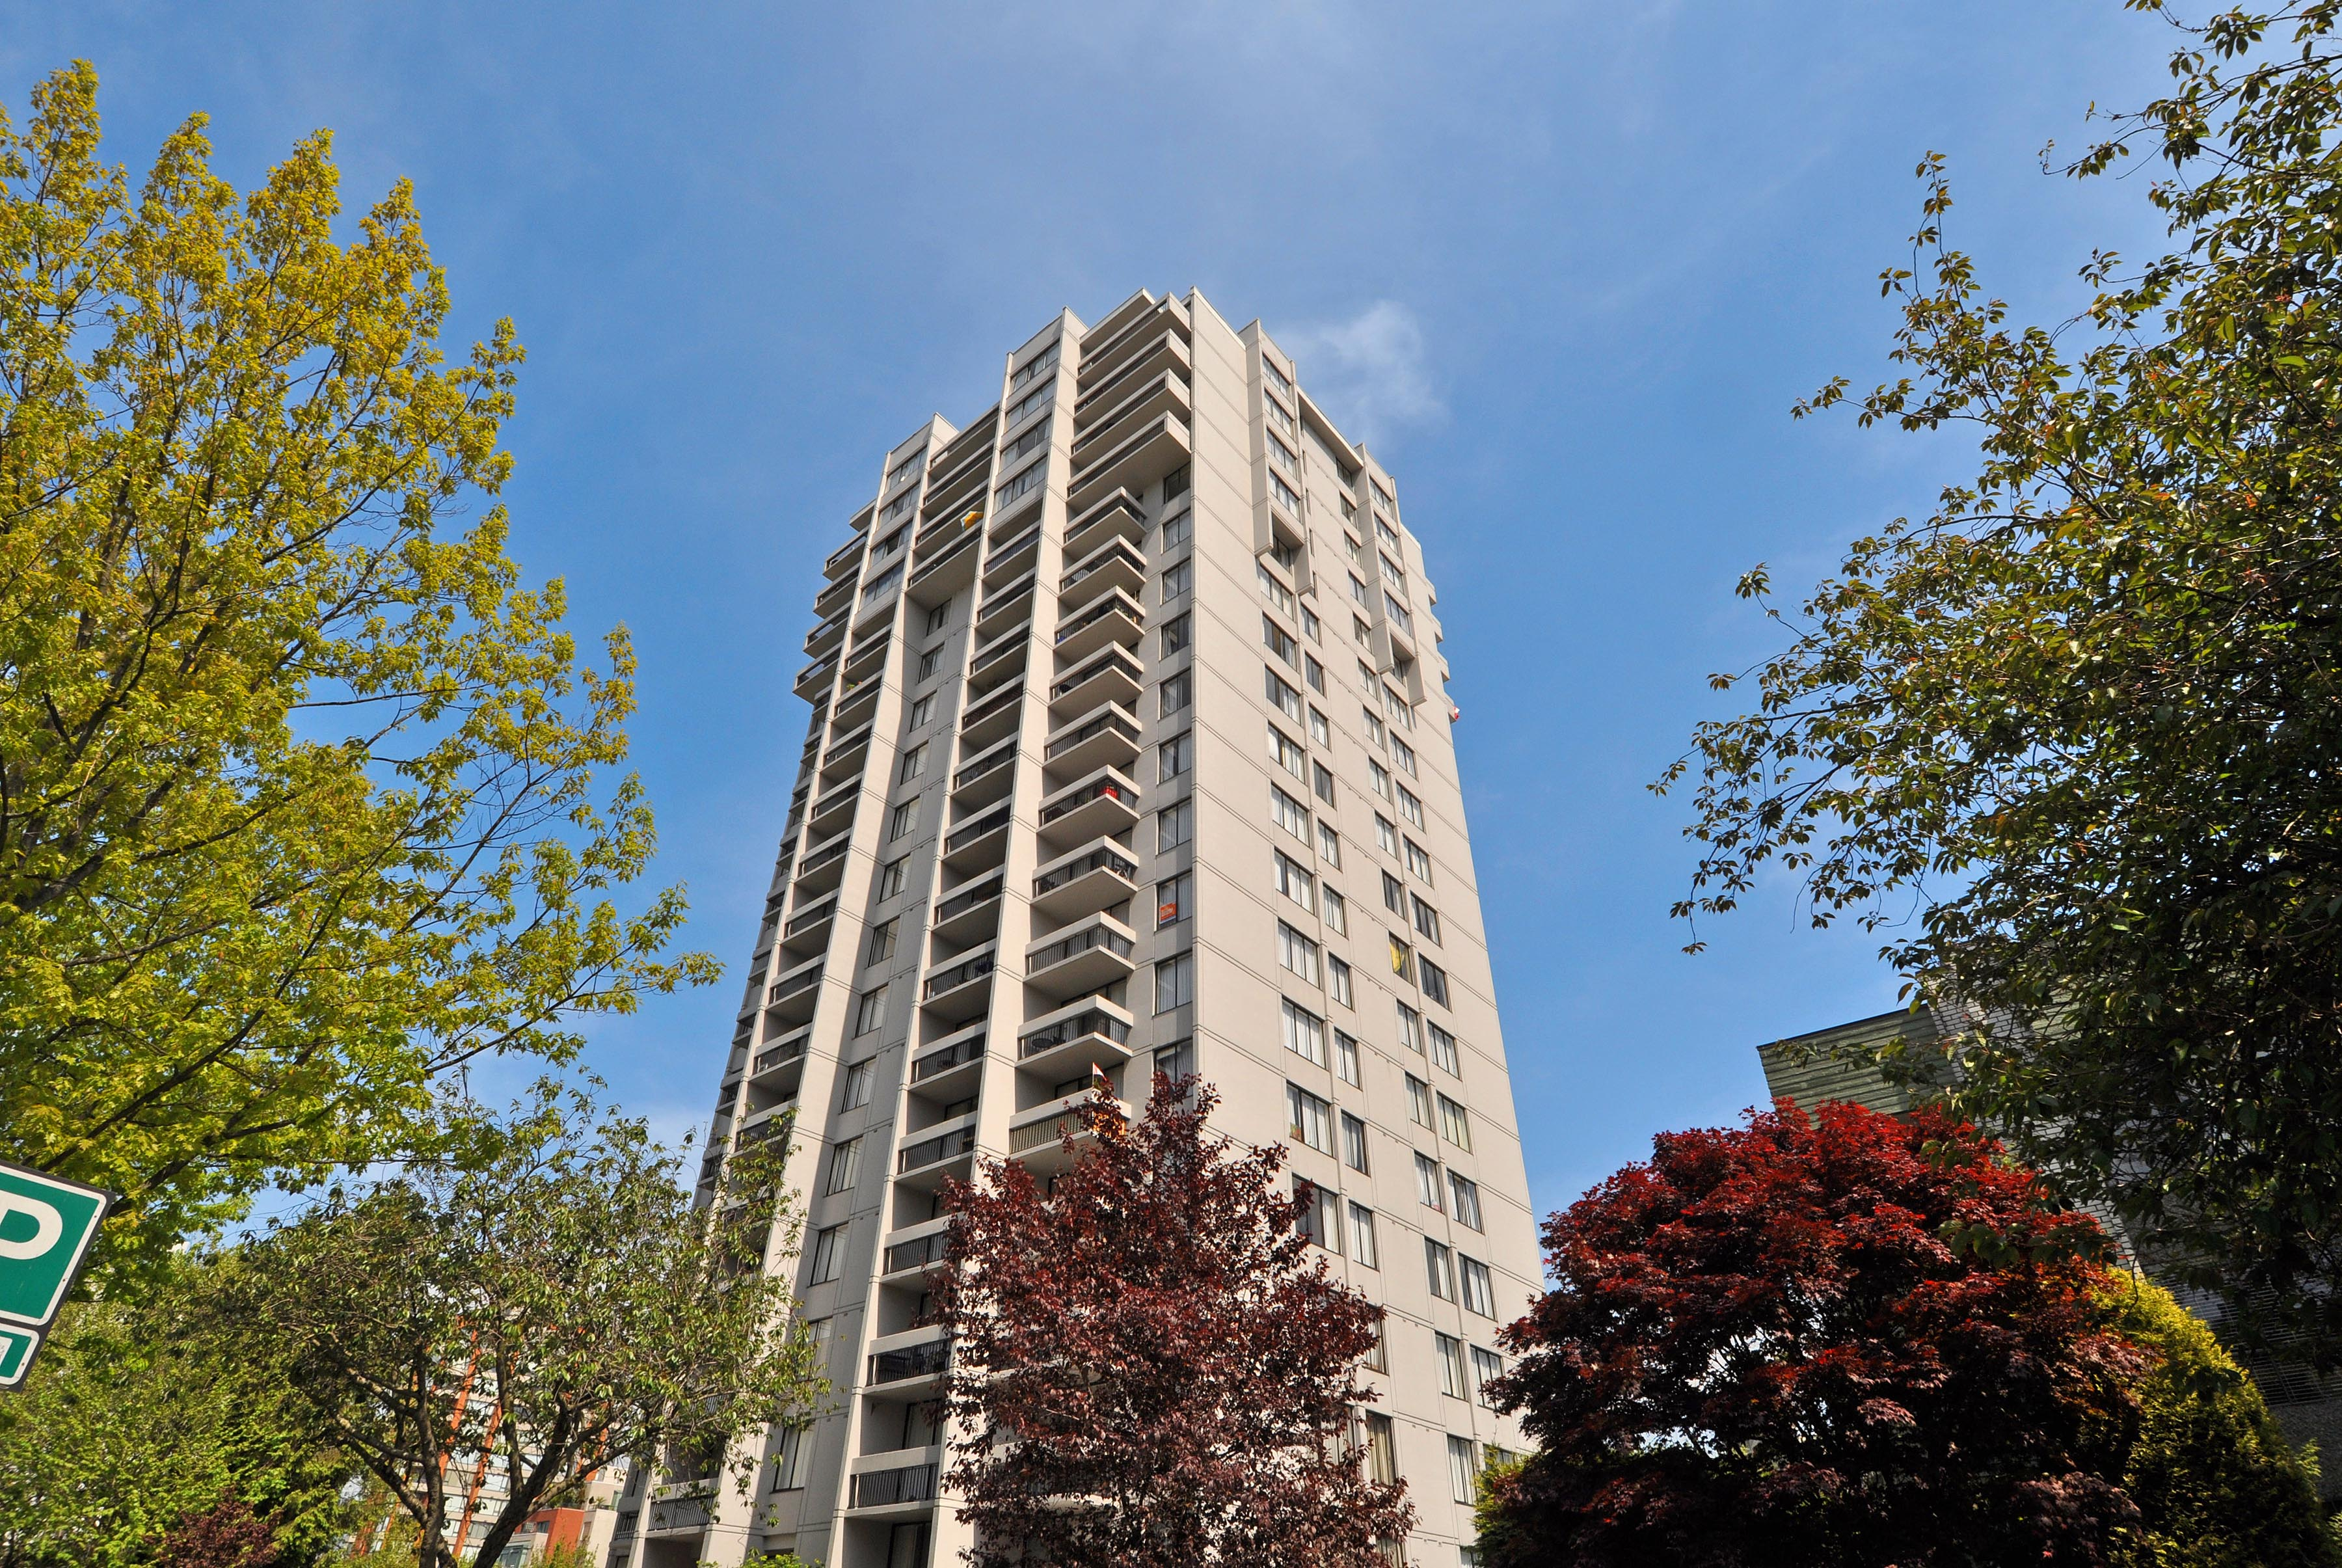 1755 Haro St, Vancouver, BC - $2,132